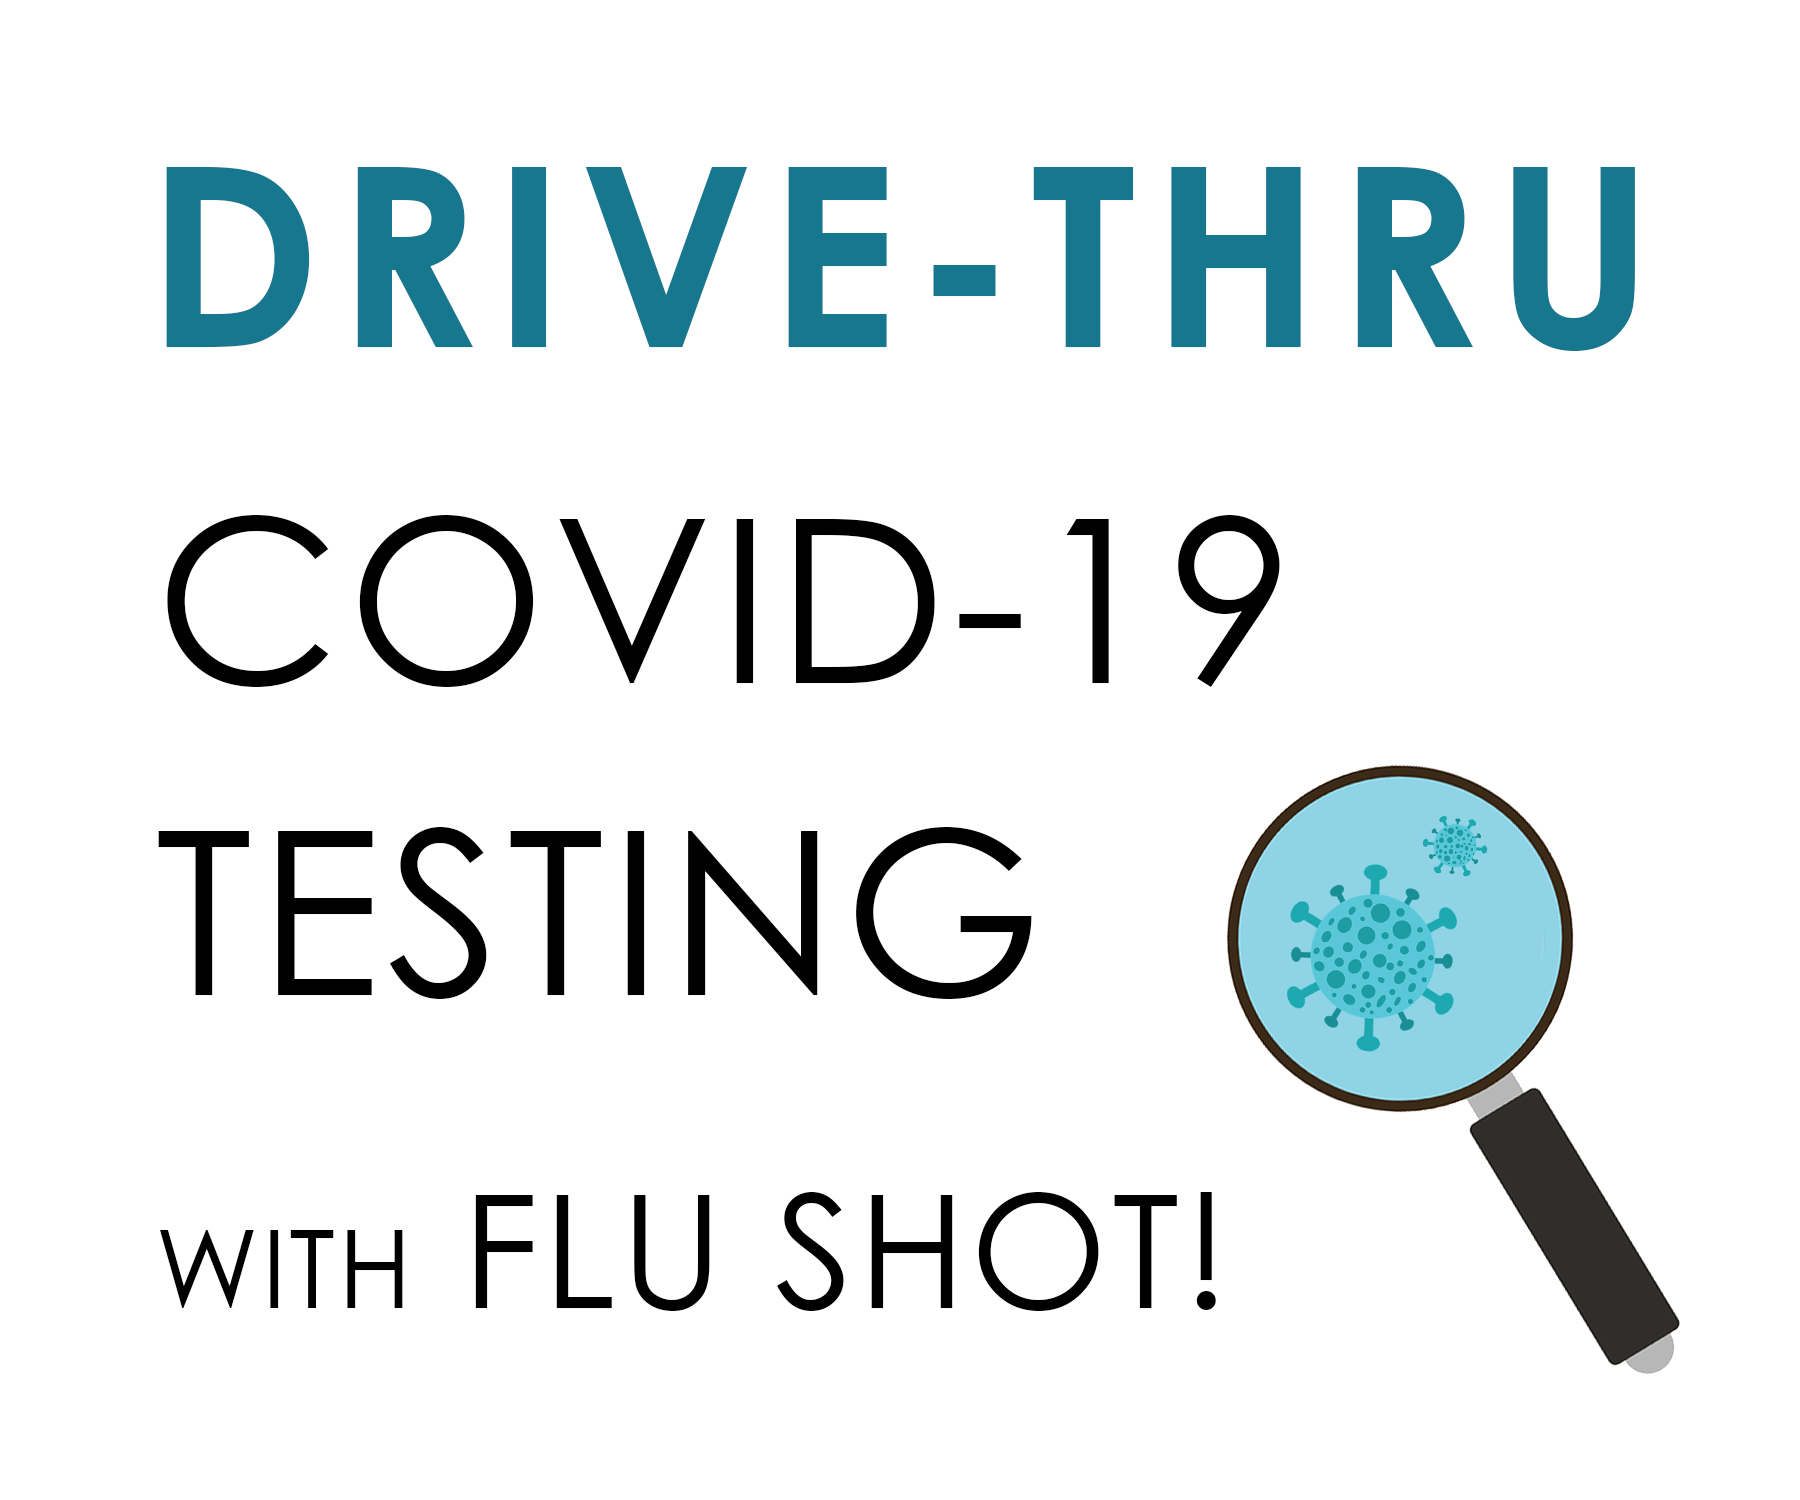 Whc%20covid-19testing%20news%20post%20image%20with%20flu%20shot